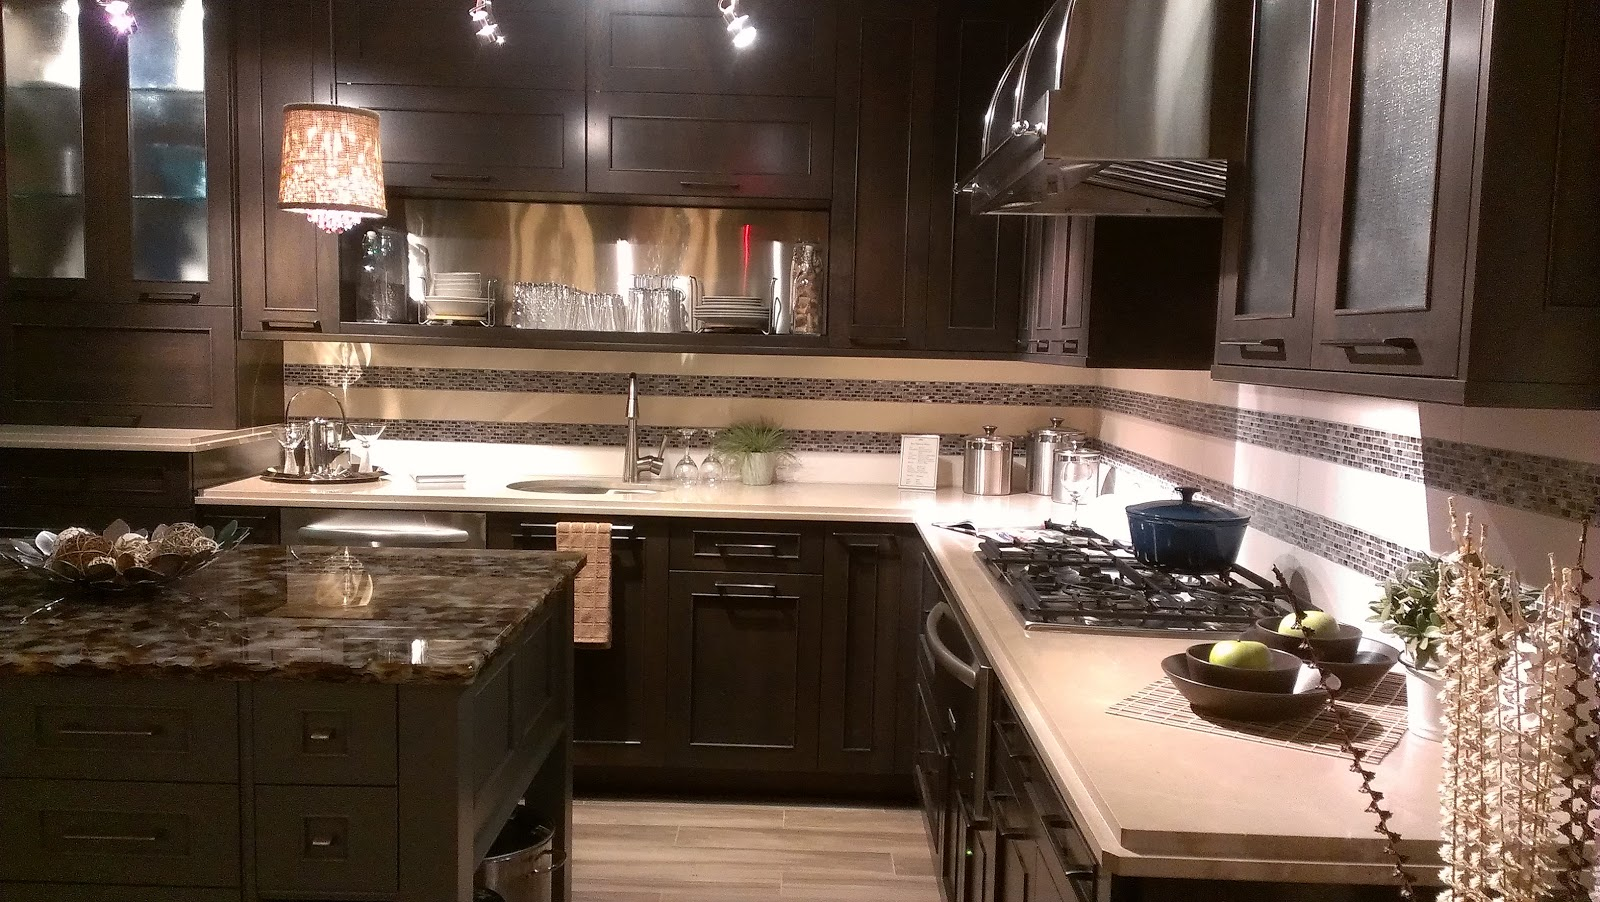 found my dream kitchen in the display room of kitchens of diablo